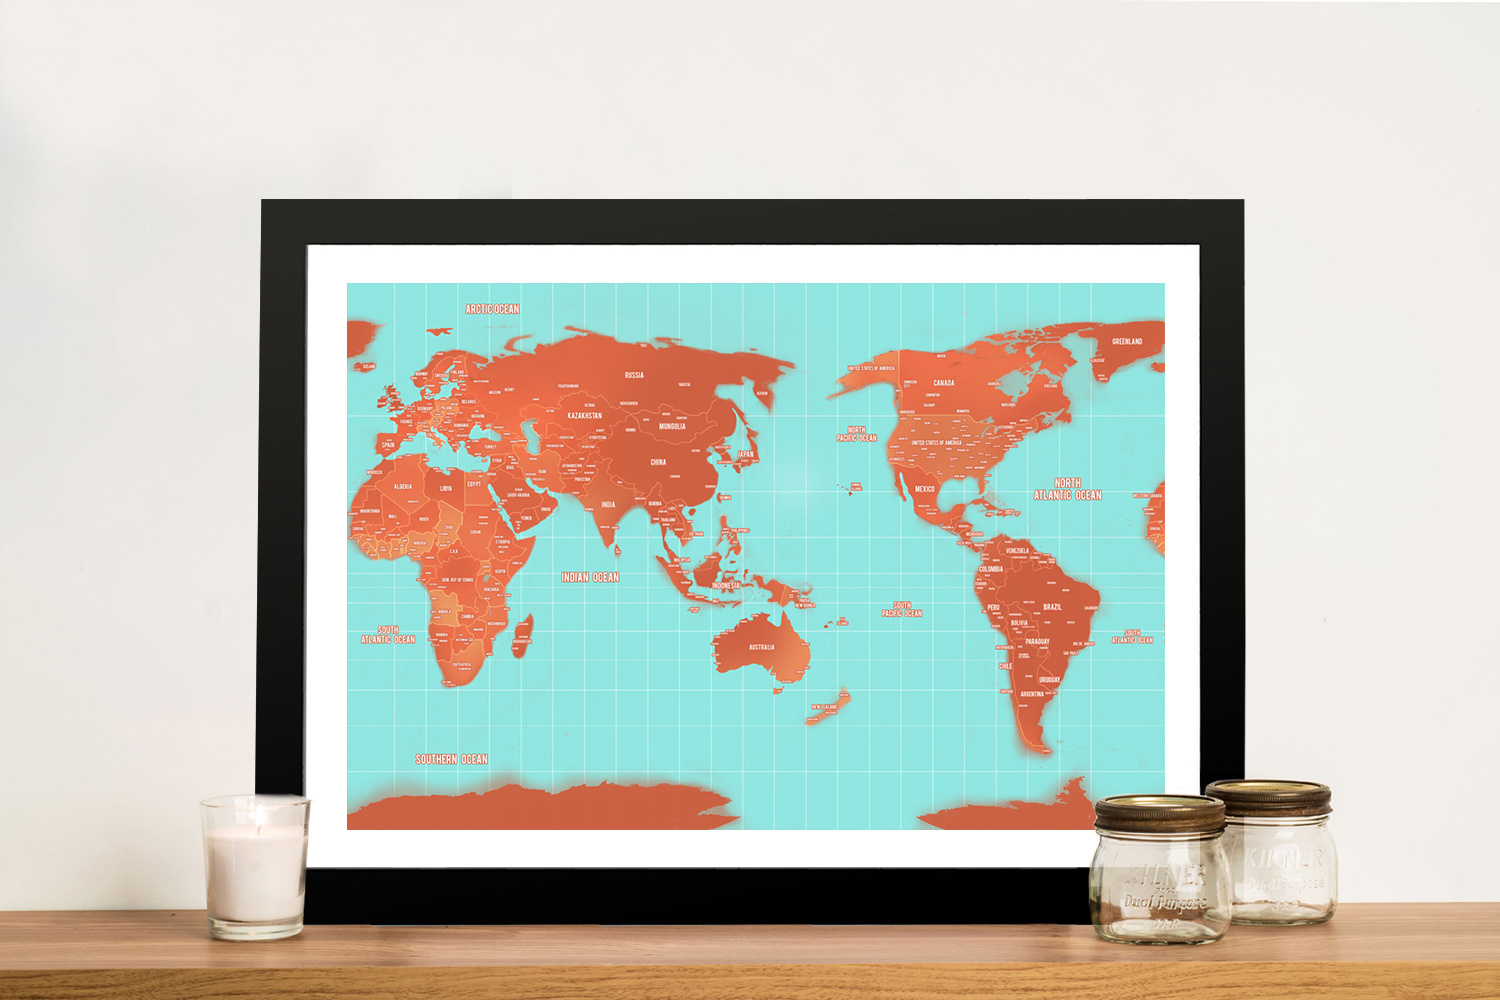 Pacific Centred Turquoise World Map | Australia-Centric Turquoise and Orange World Map